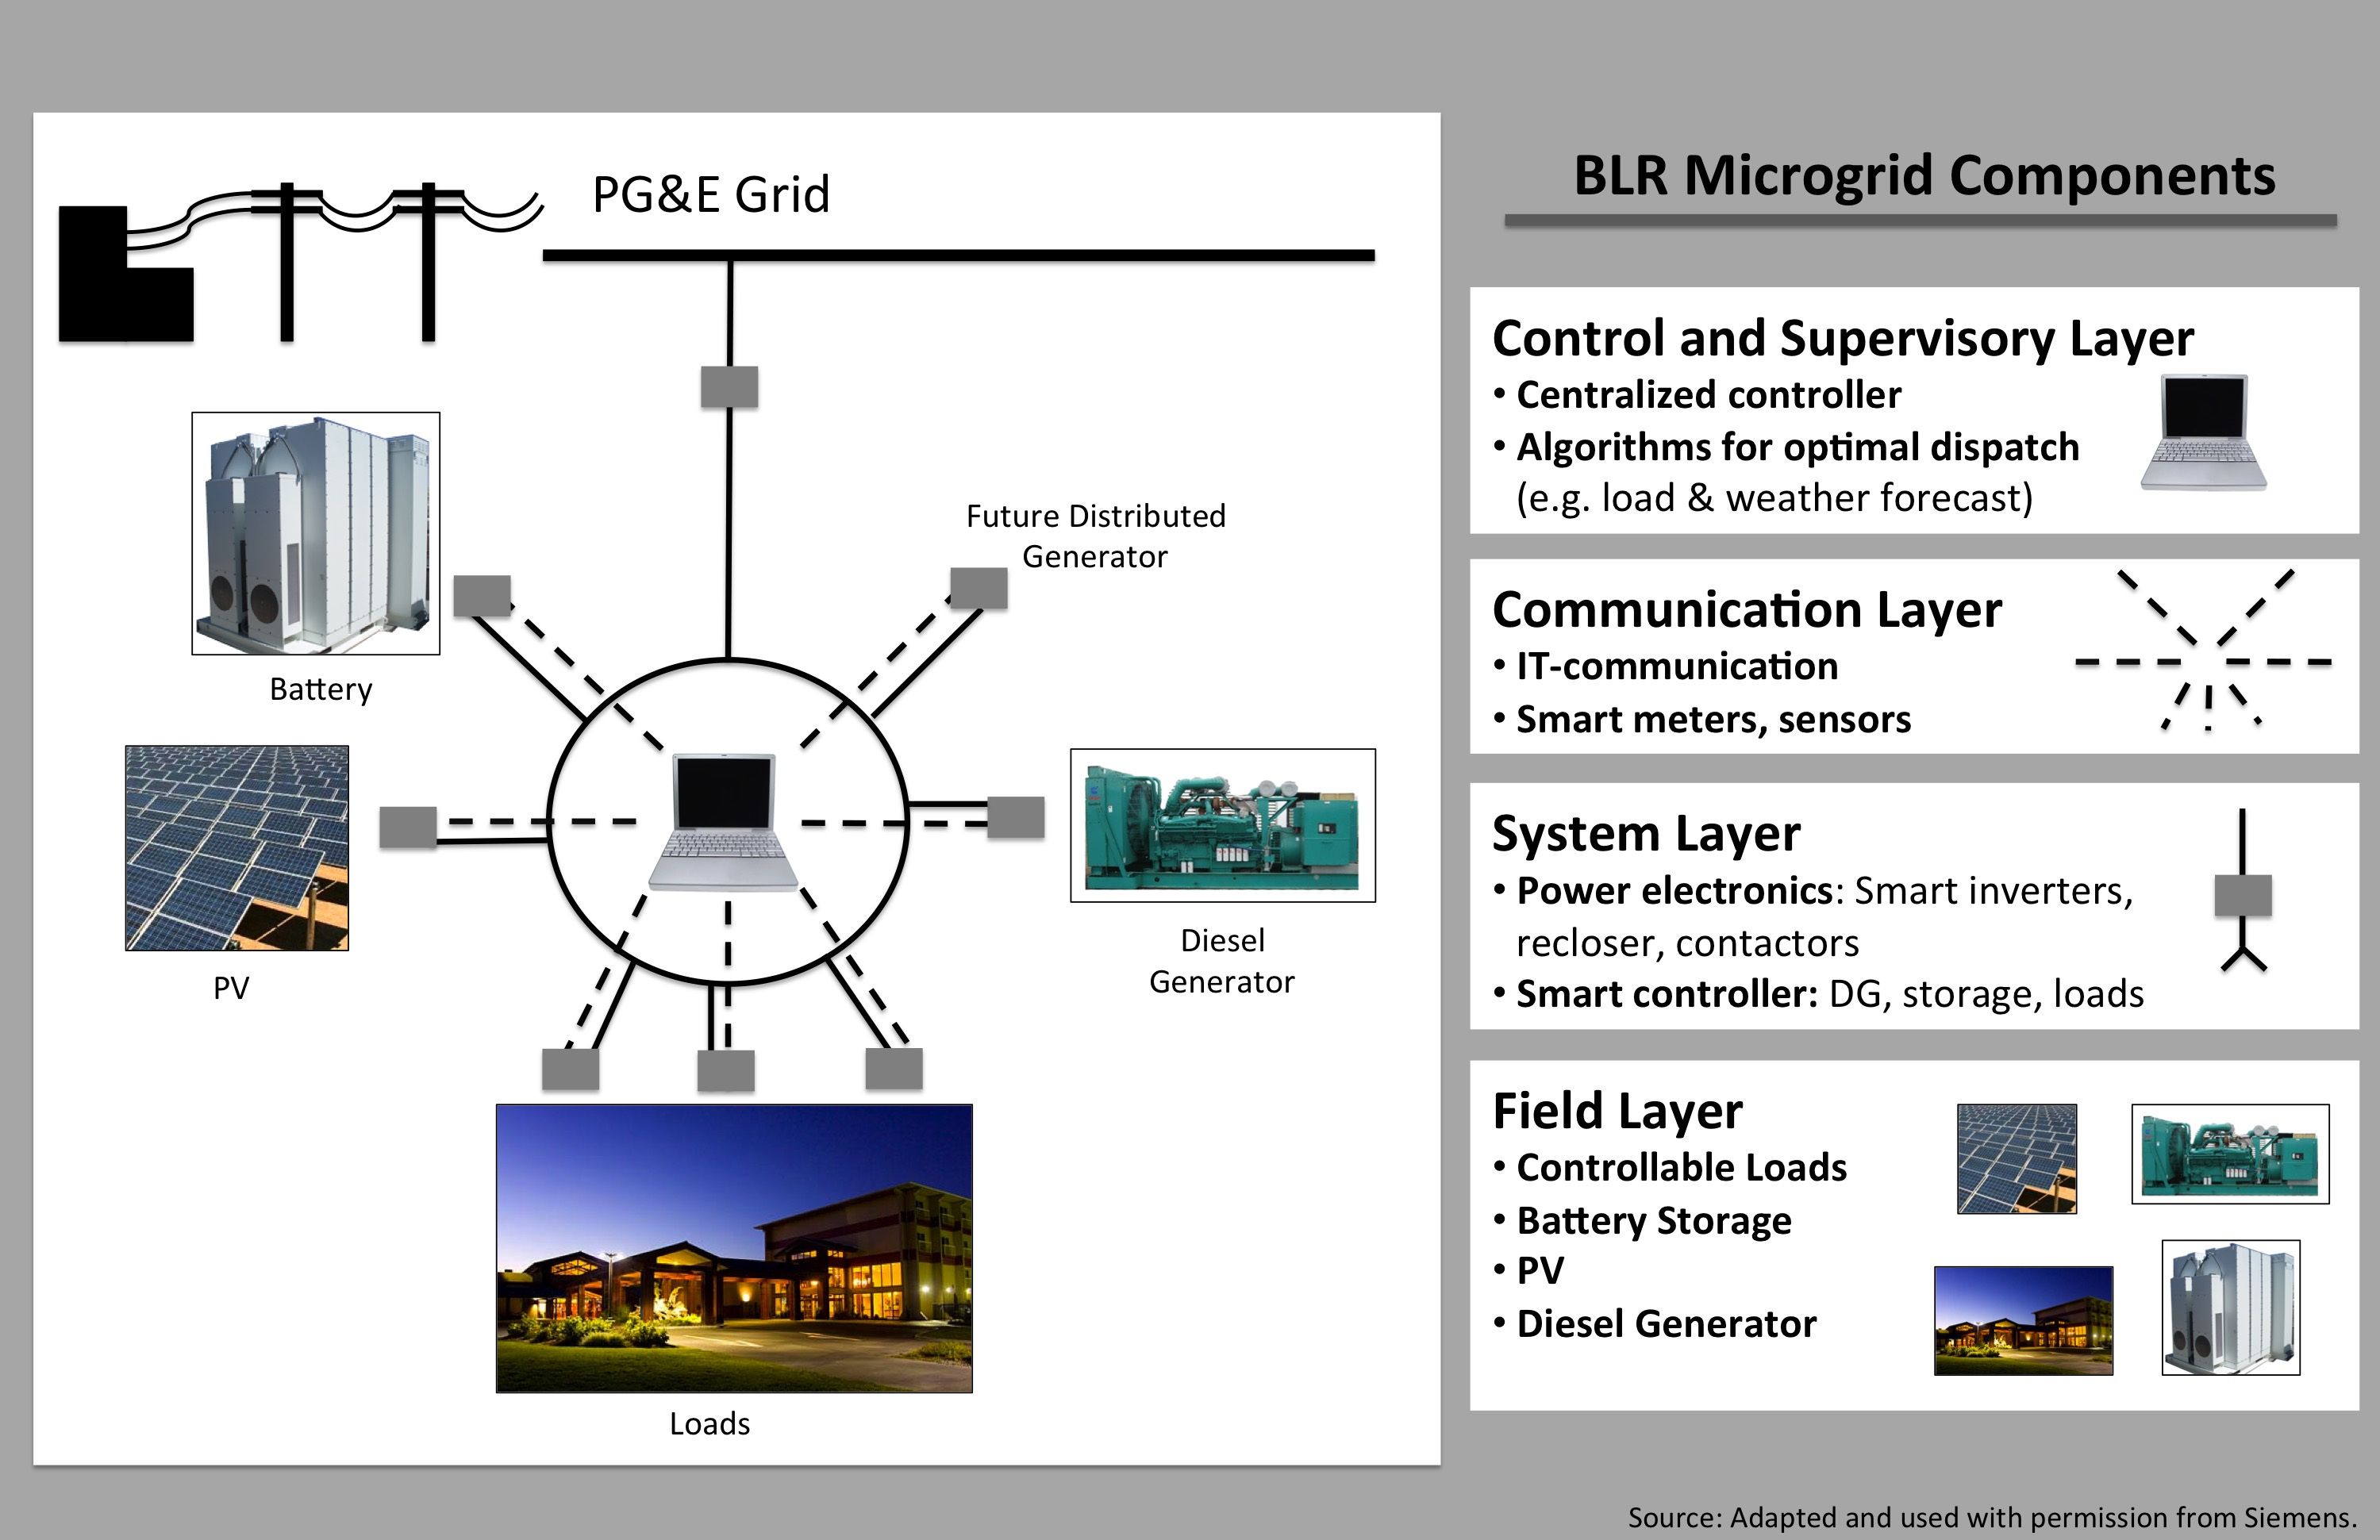 Community Microgrid at Blue Lake Rancheria